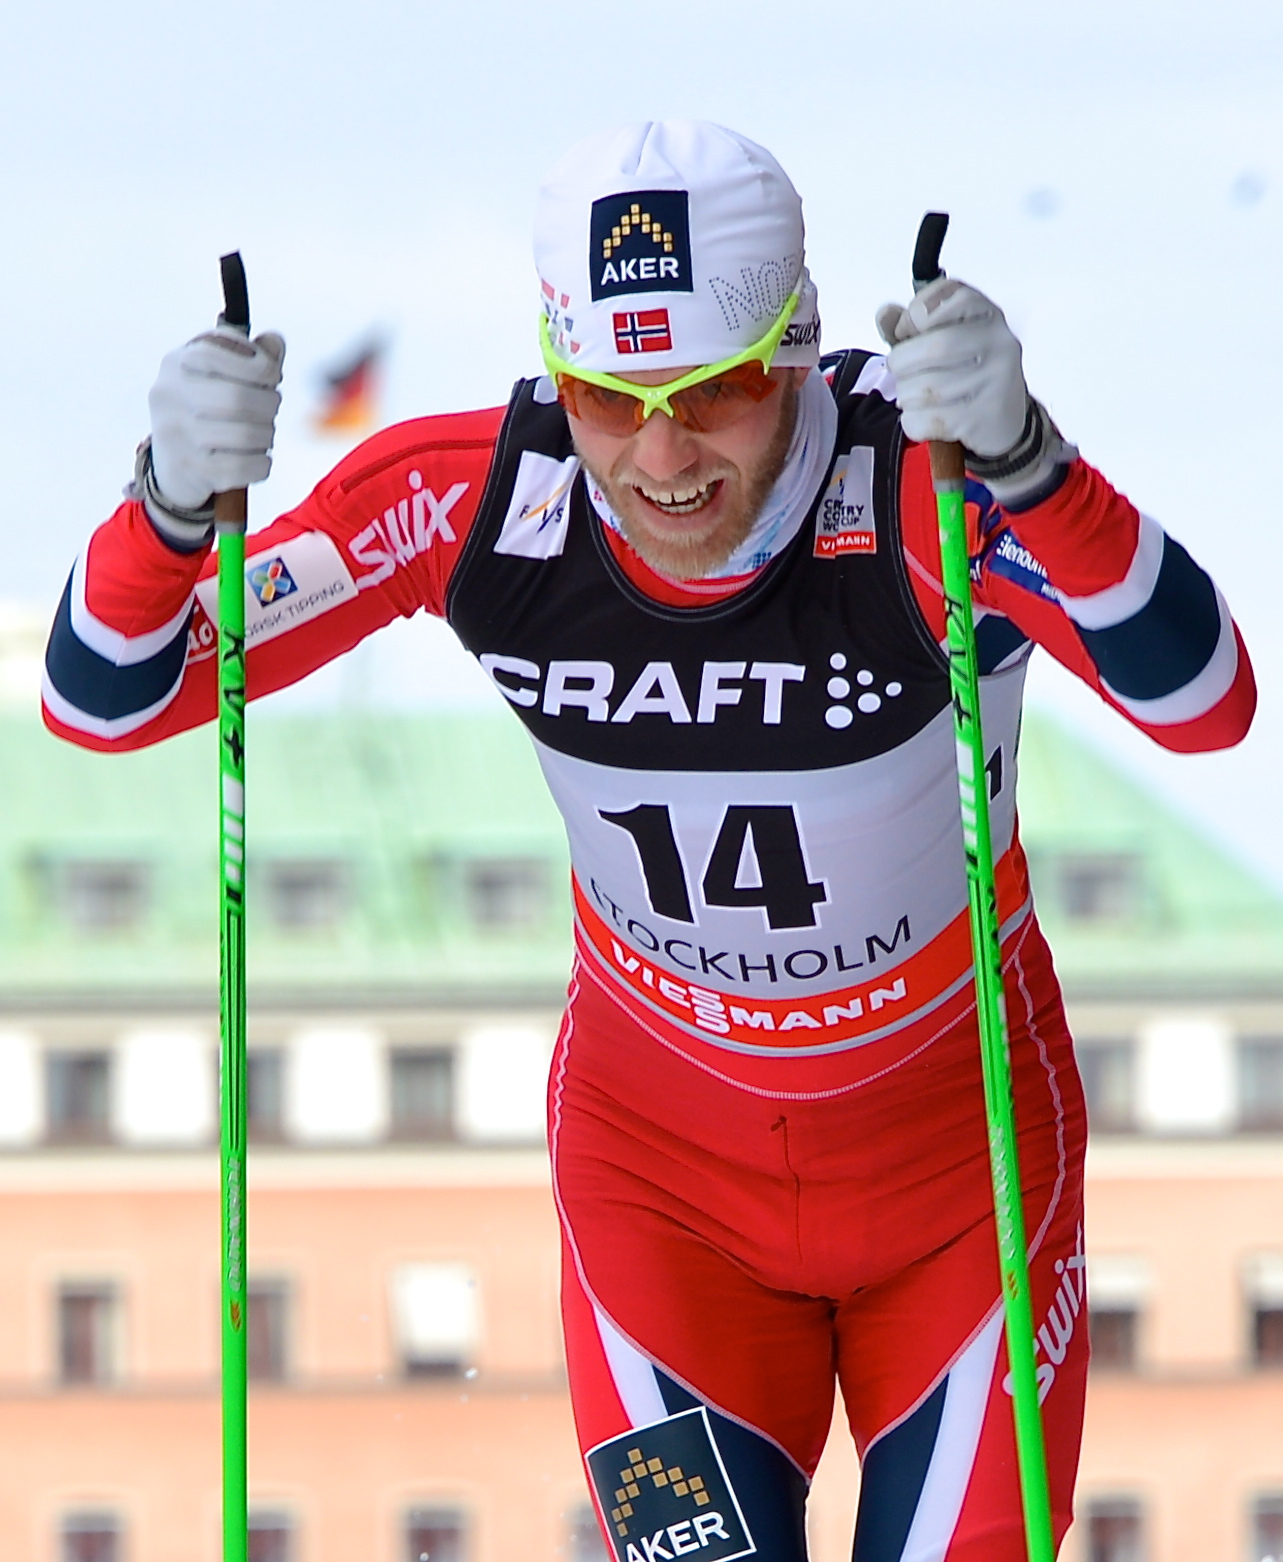 Martin Johnsrud Sundby Stripped Of 2014 15 World Cup And Tour De Ski Titles Following Court Of Arbitration For Sport Ruling Cross Country Skier